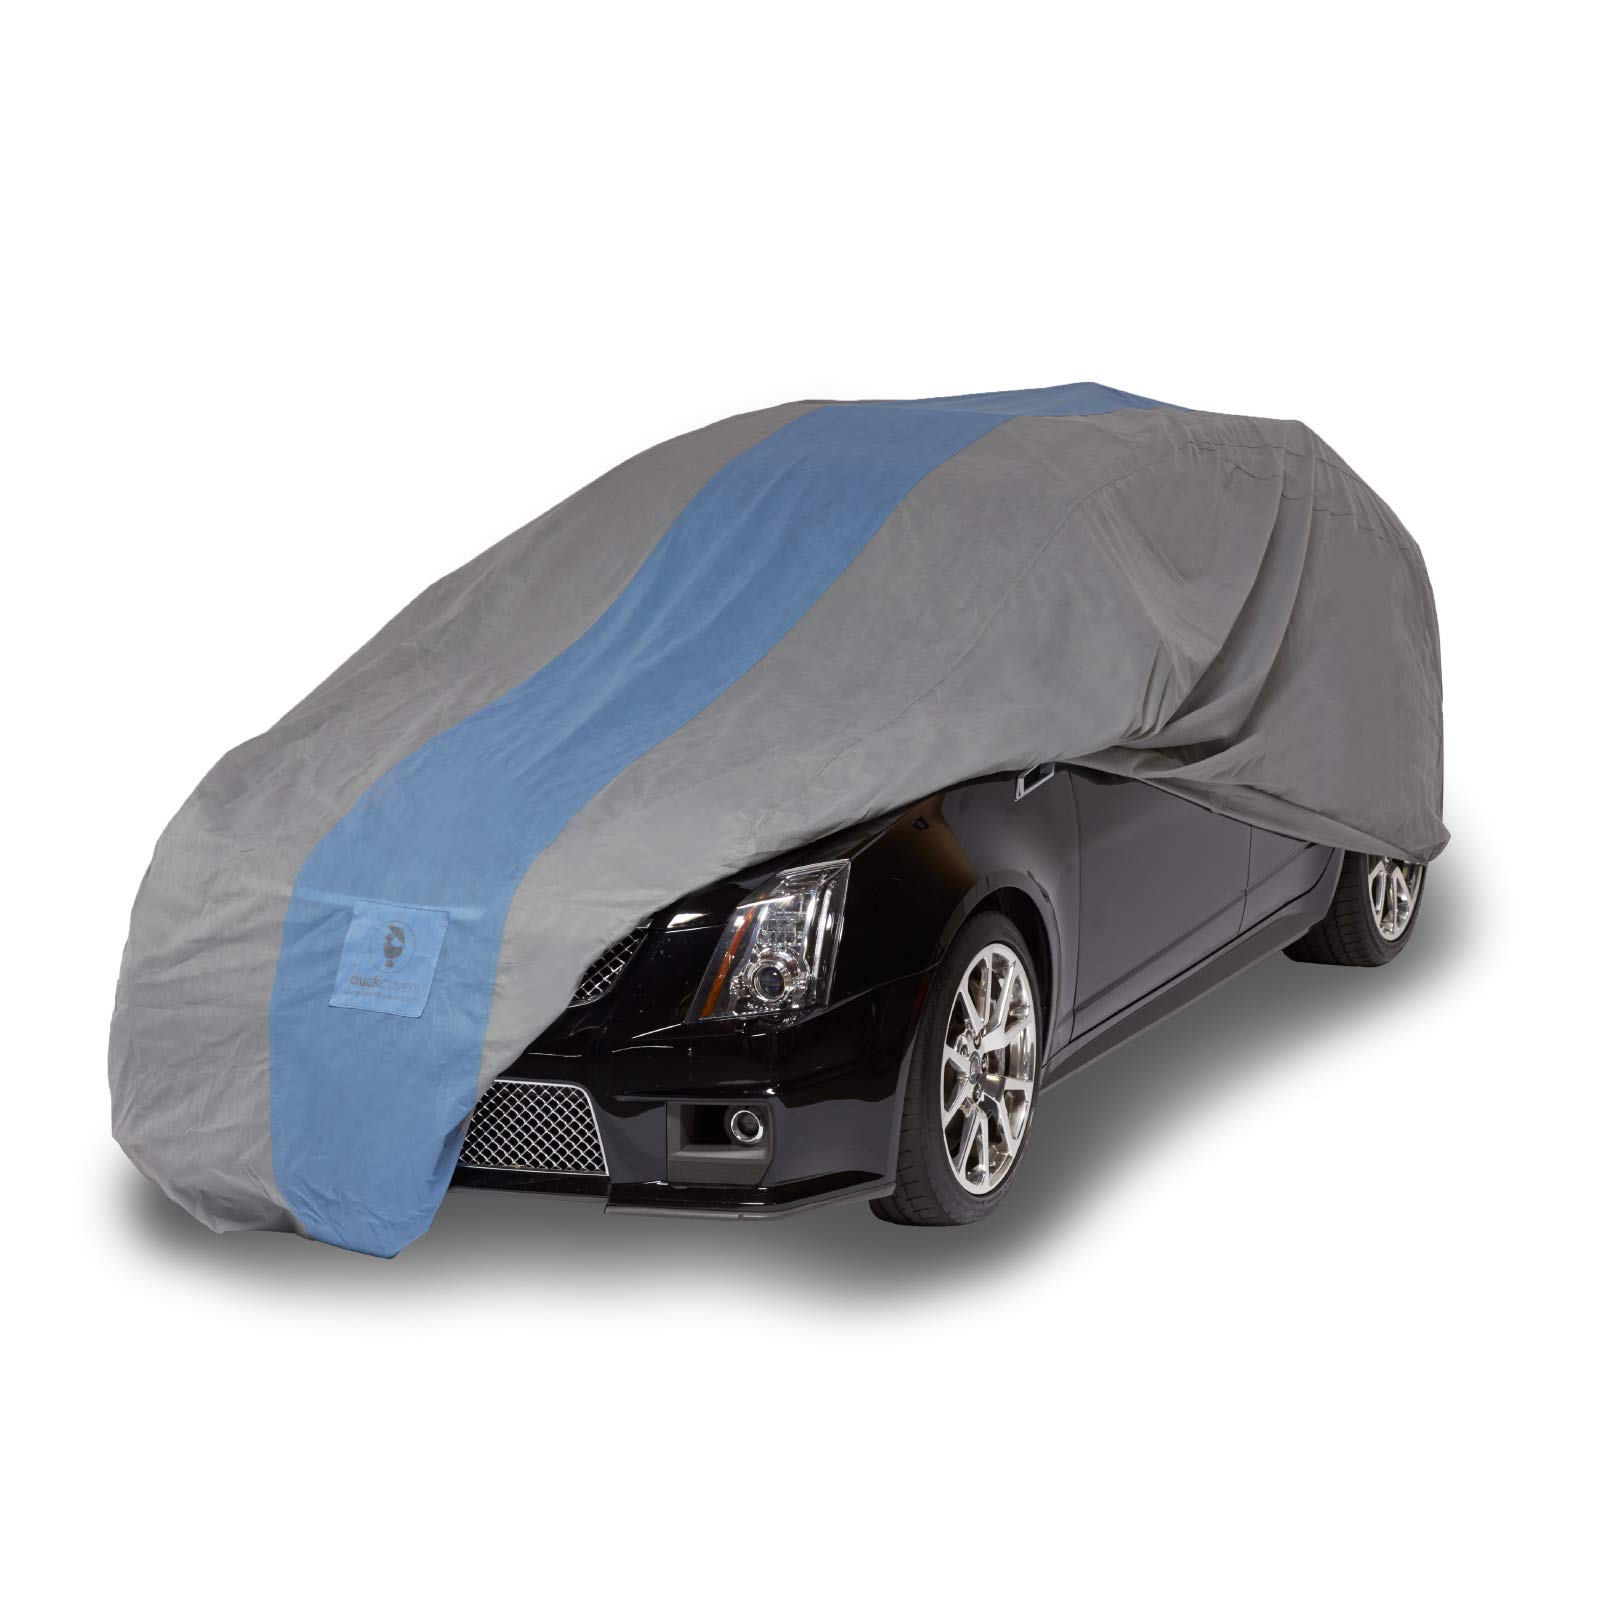 """Duck Covers Defender Station Wagon Cover for Wagons up to 16' 8"""""""